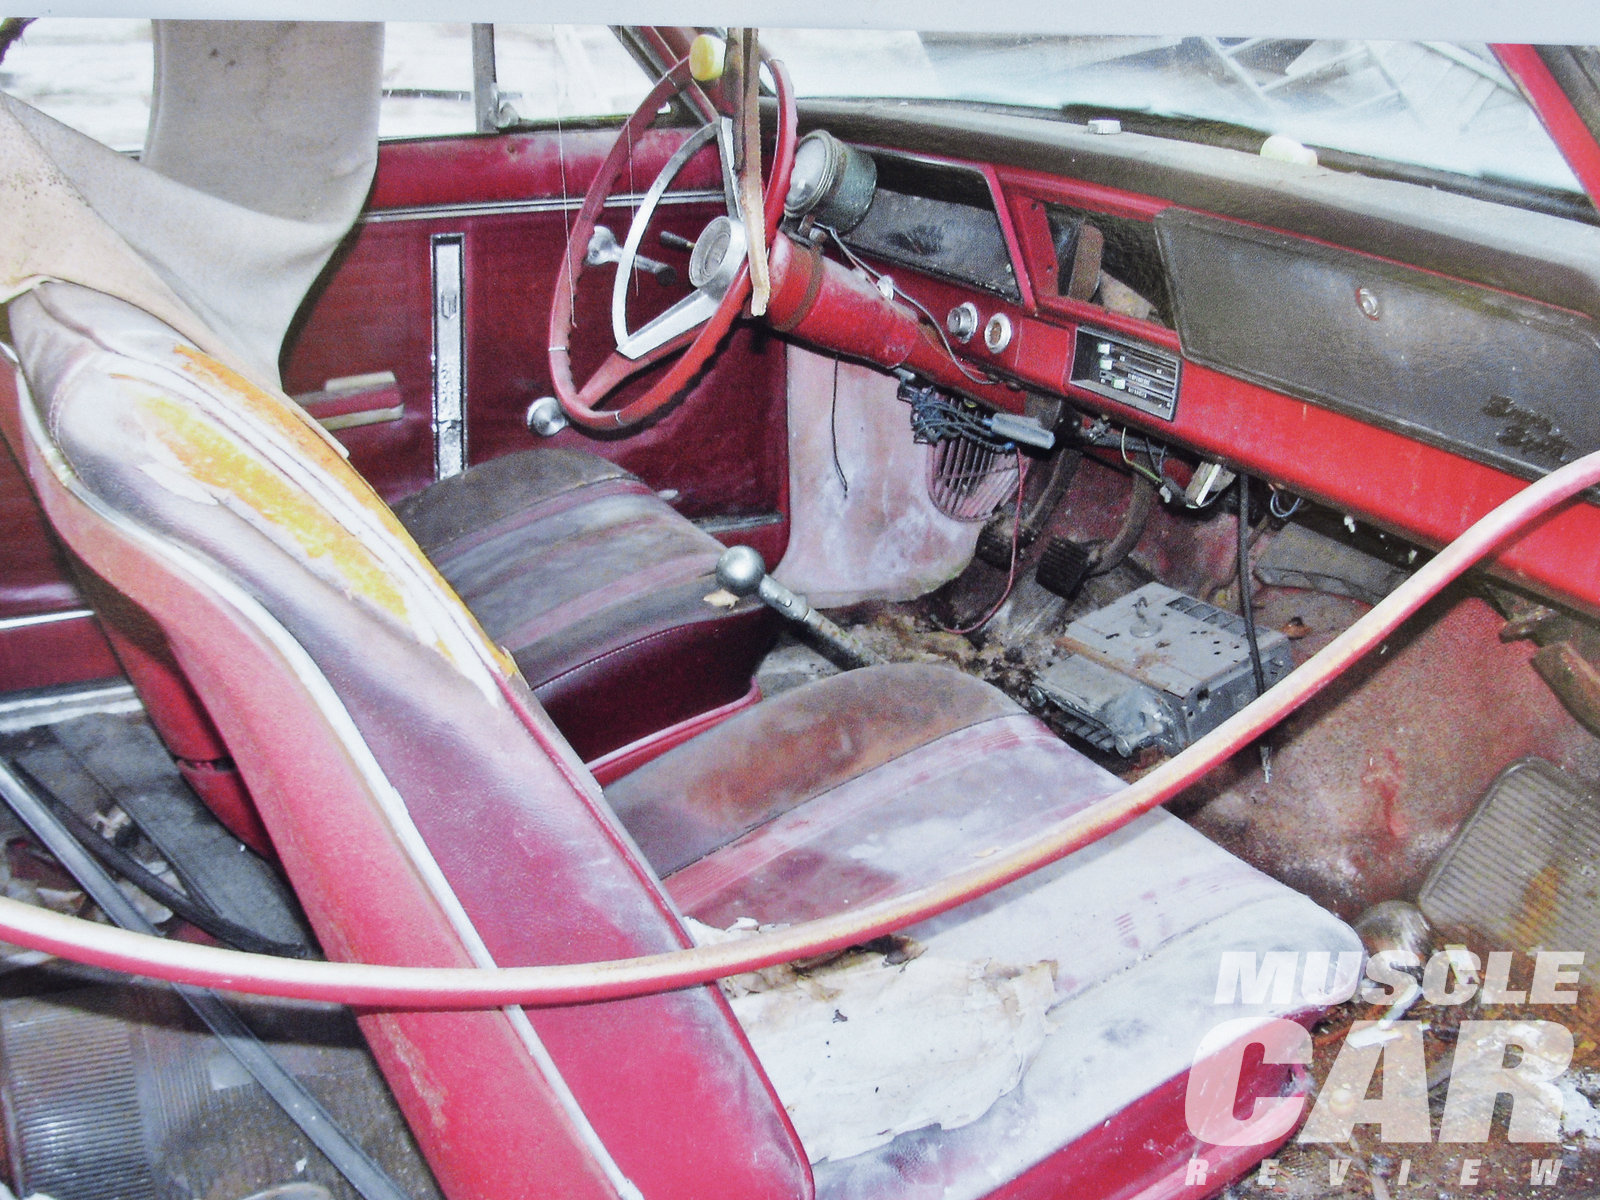 The interior is complete with bucket seats and the four-speed shifter. What are the odds a '66 Nova on a farm would be a rare L79?